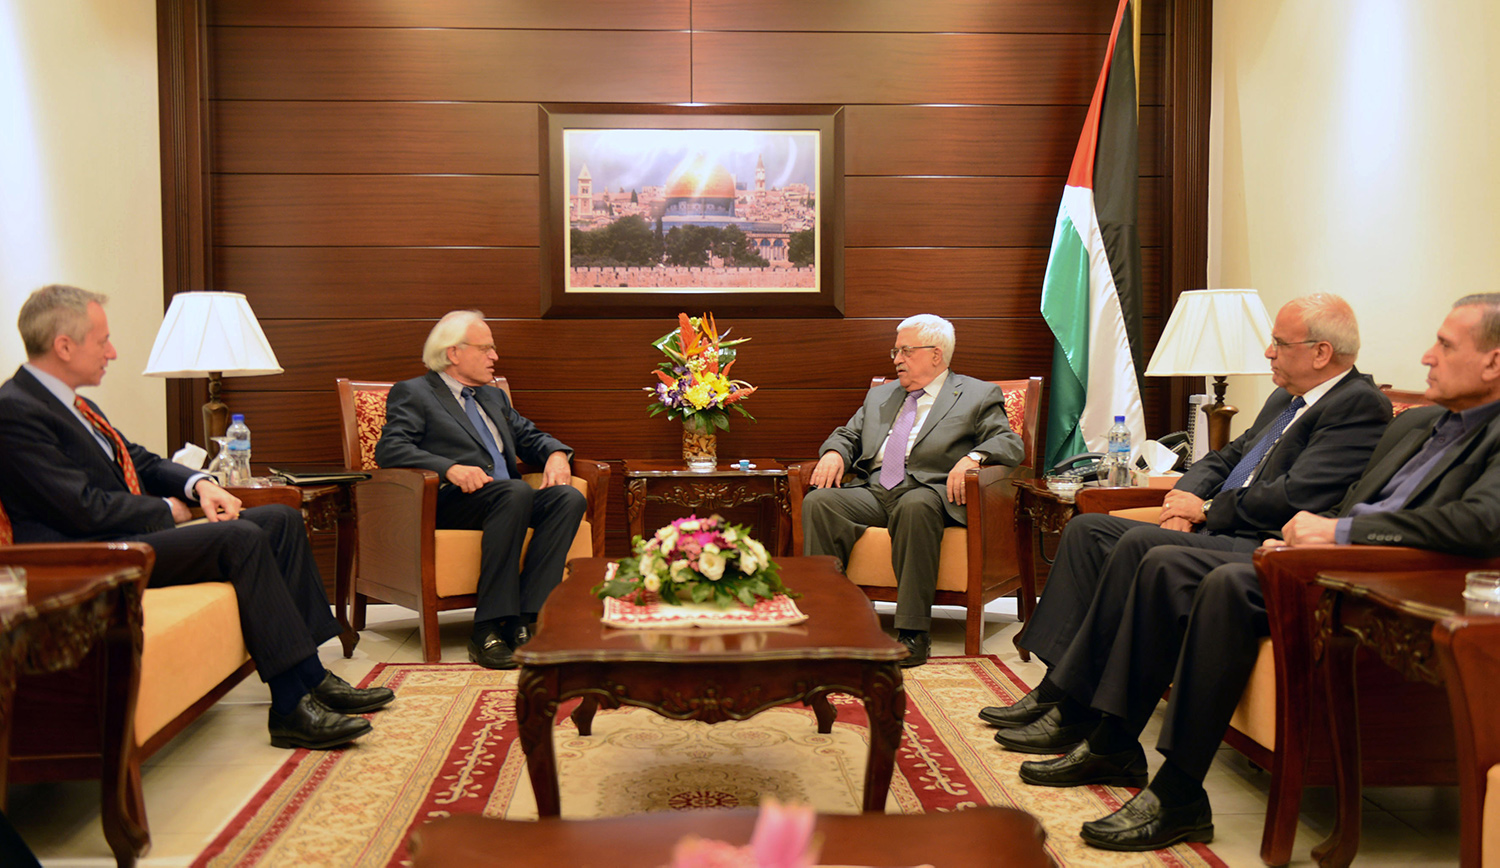 Palestinian Authority President Mahmoud Abbas with U.S. envoy Martin Indyk to discuss peace talks with Israel on September 17, 2013 in Ramallah. Thaer Ghanaim/PPO via Getty Images.